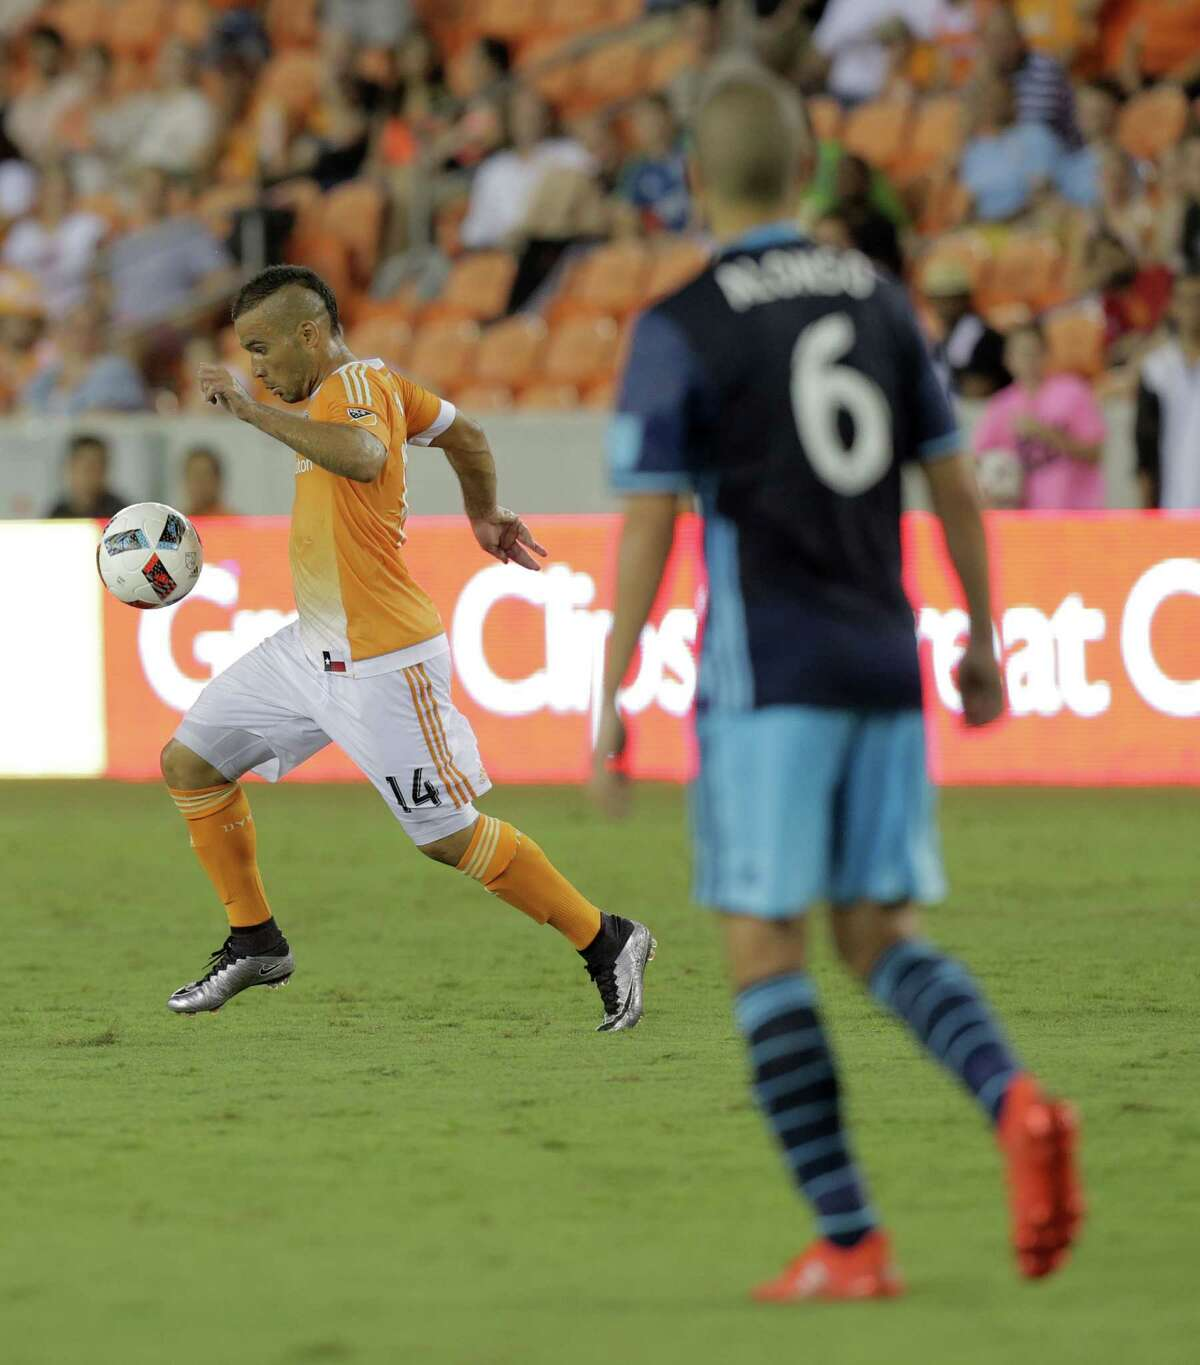 Houston Dynamo midfielder Alex (14) controls the ball in the second half of MLS game action against Seattle Sounders on Wednesday, Aug. 24, 2016, in Houston.